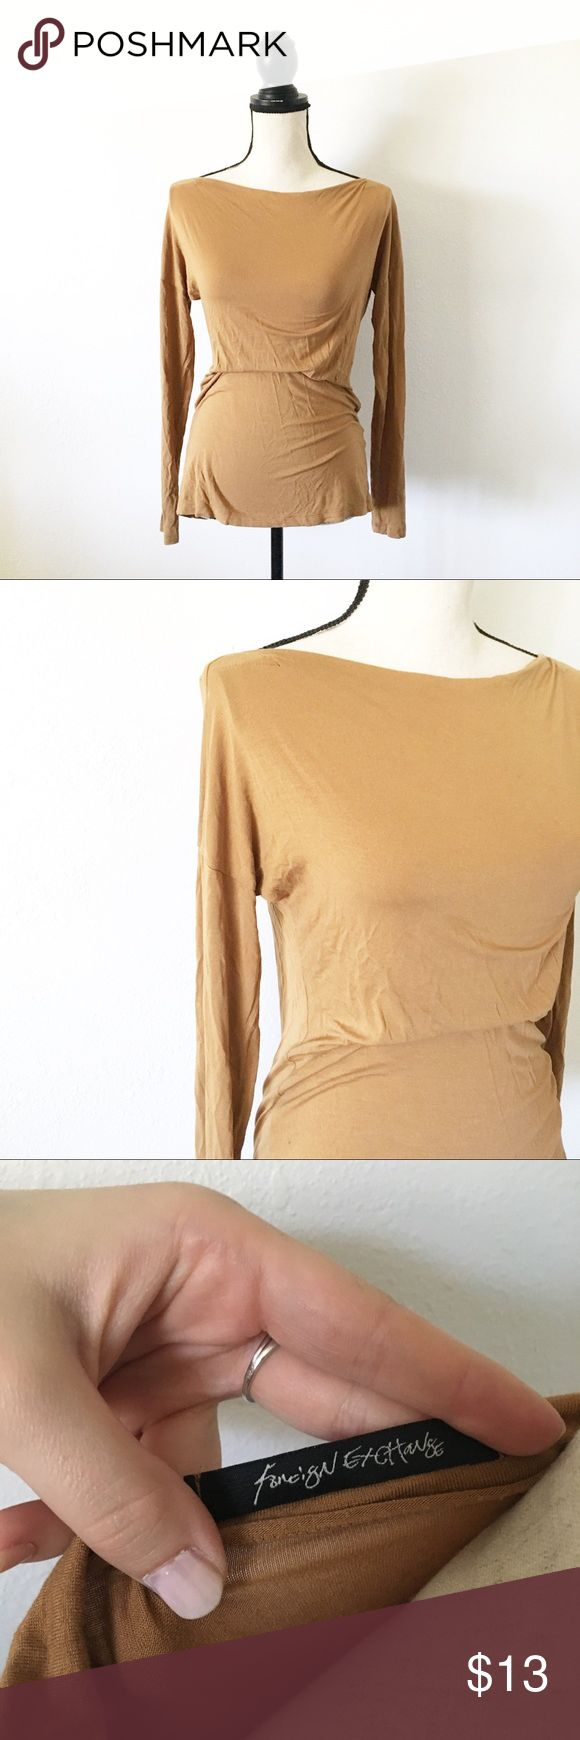 Camel Long Sleeve This item is so cute and is perfect for fall! It is in amazing condition, no flaws. No trades please. Bundle to save x Foreign Exchange Tops Tees - Long Sleeve